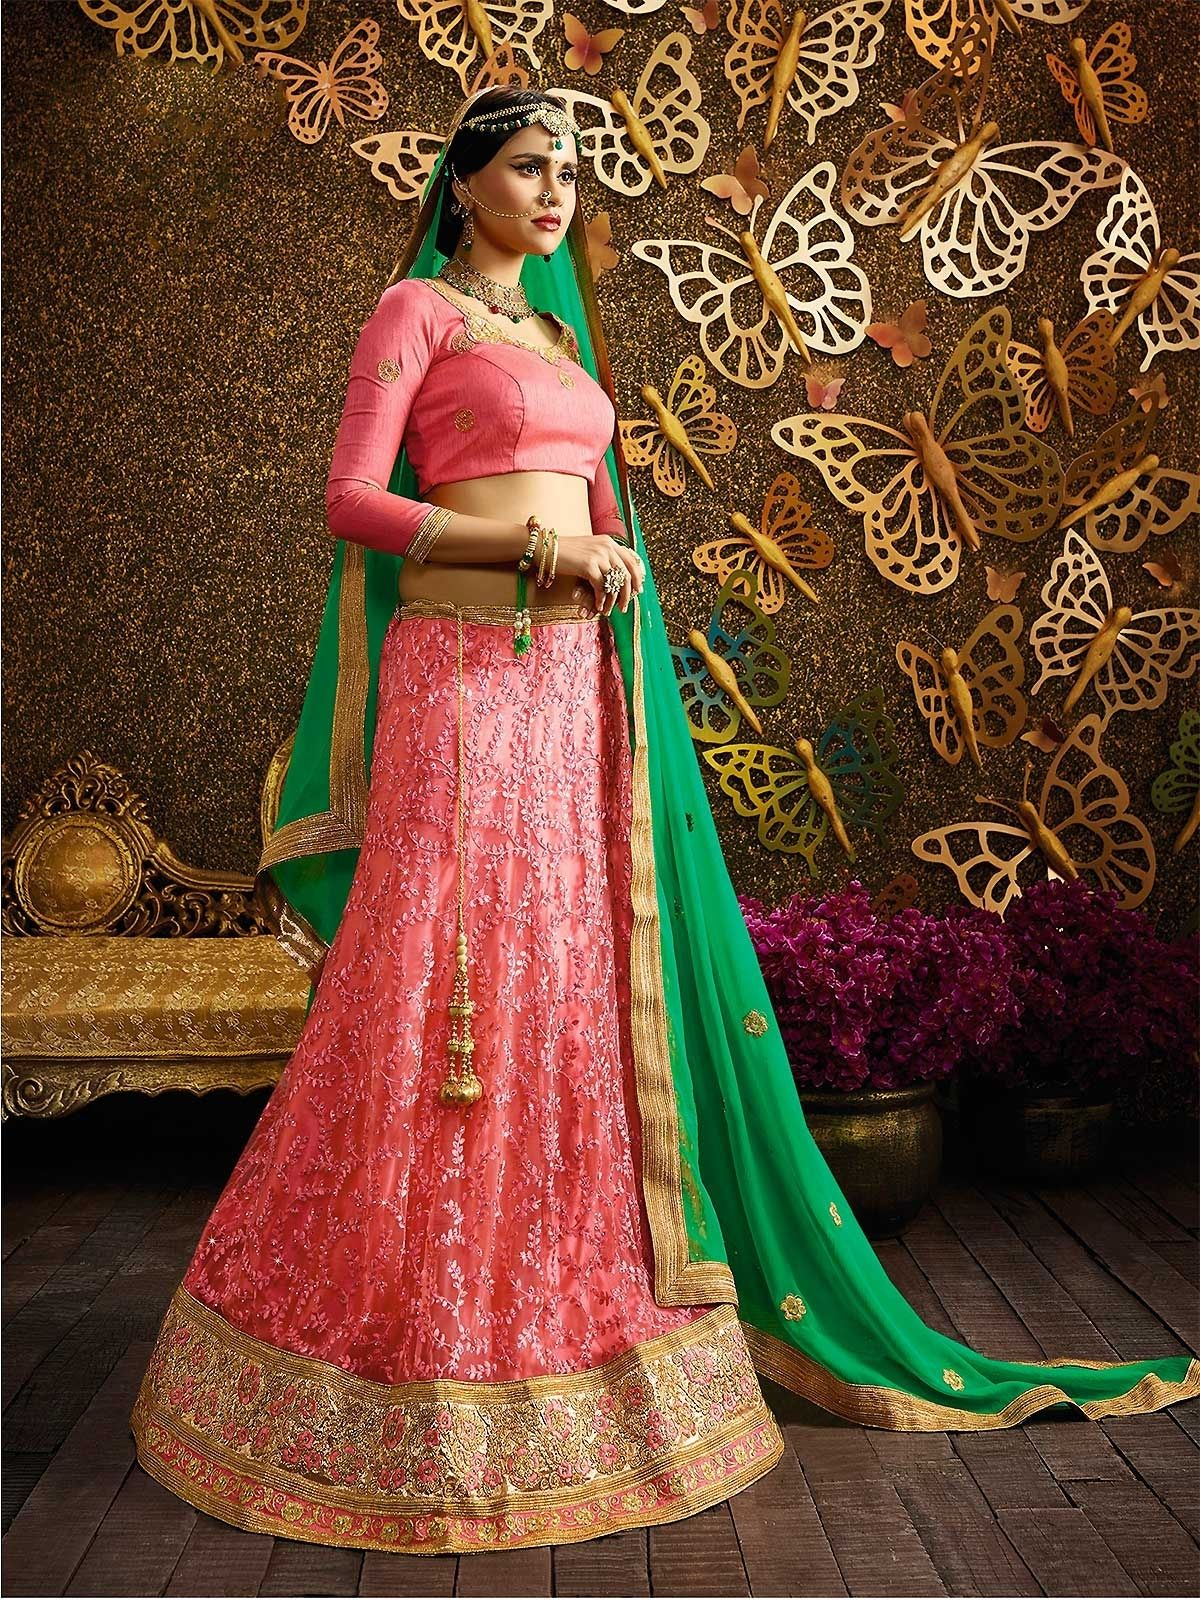 b9968f164f Buy attractive pink embroidery lehenga choli and make your attire look  richer to your persona. Explore stylish designer lehenga cholis or ghagra  cholis for ...